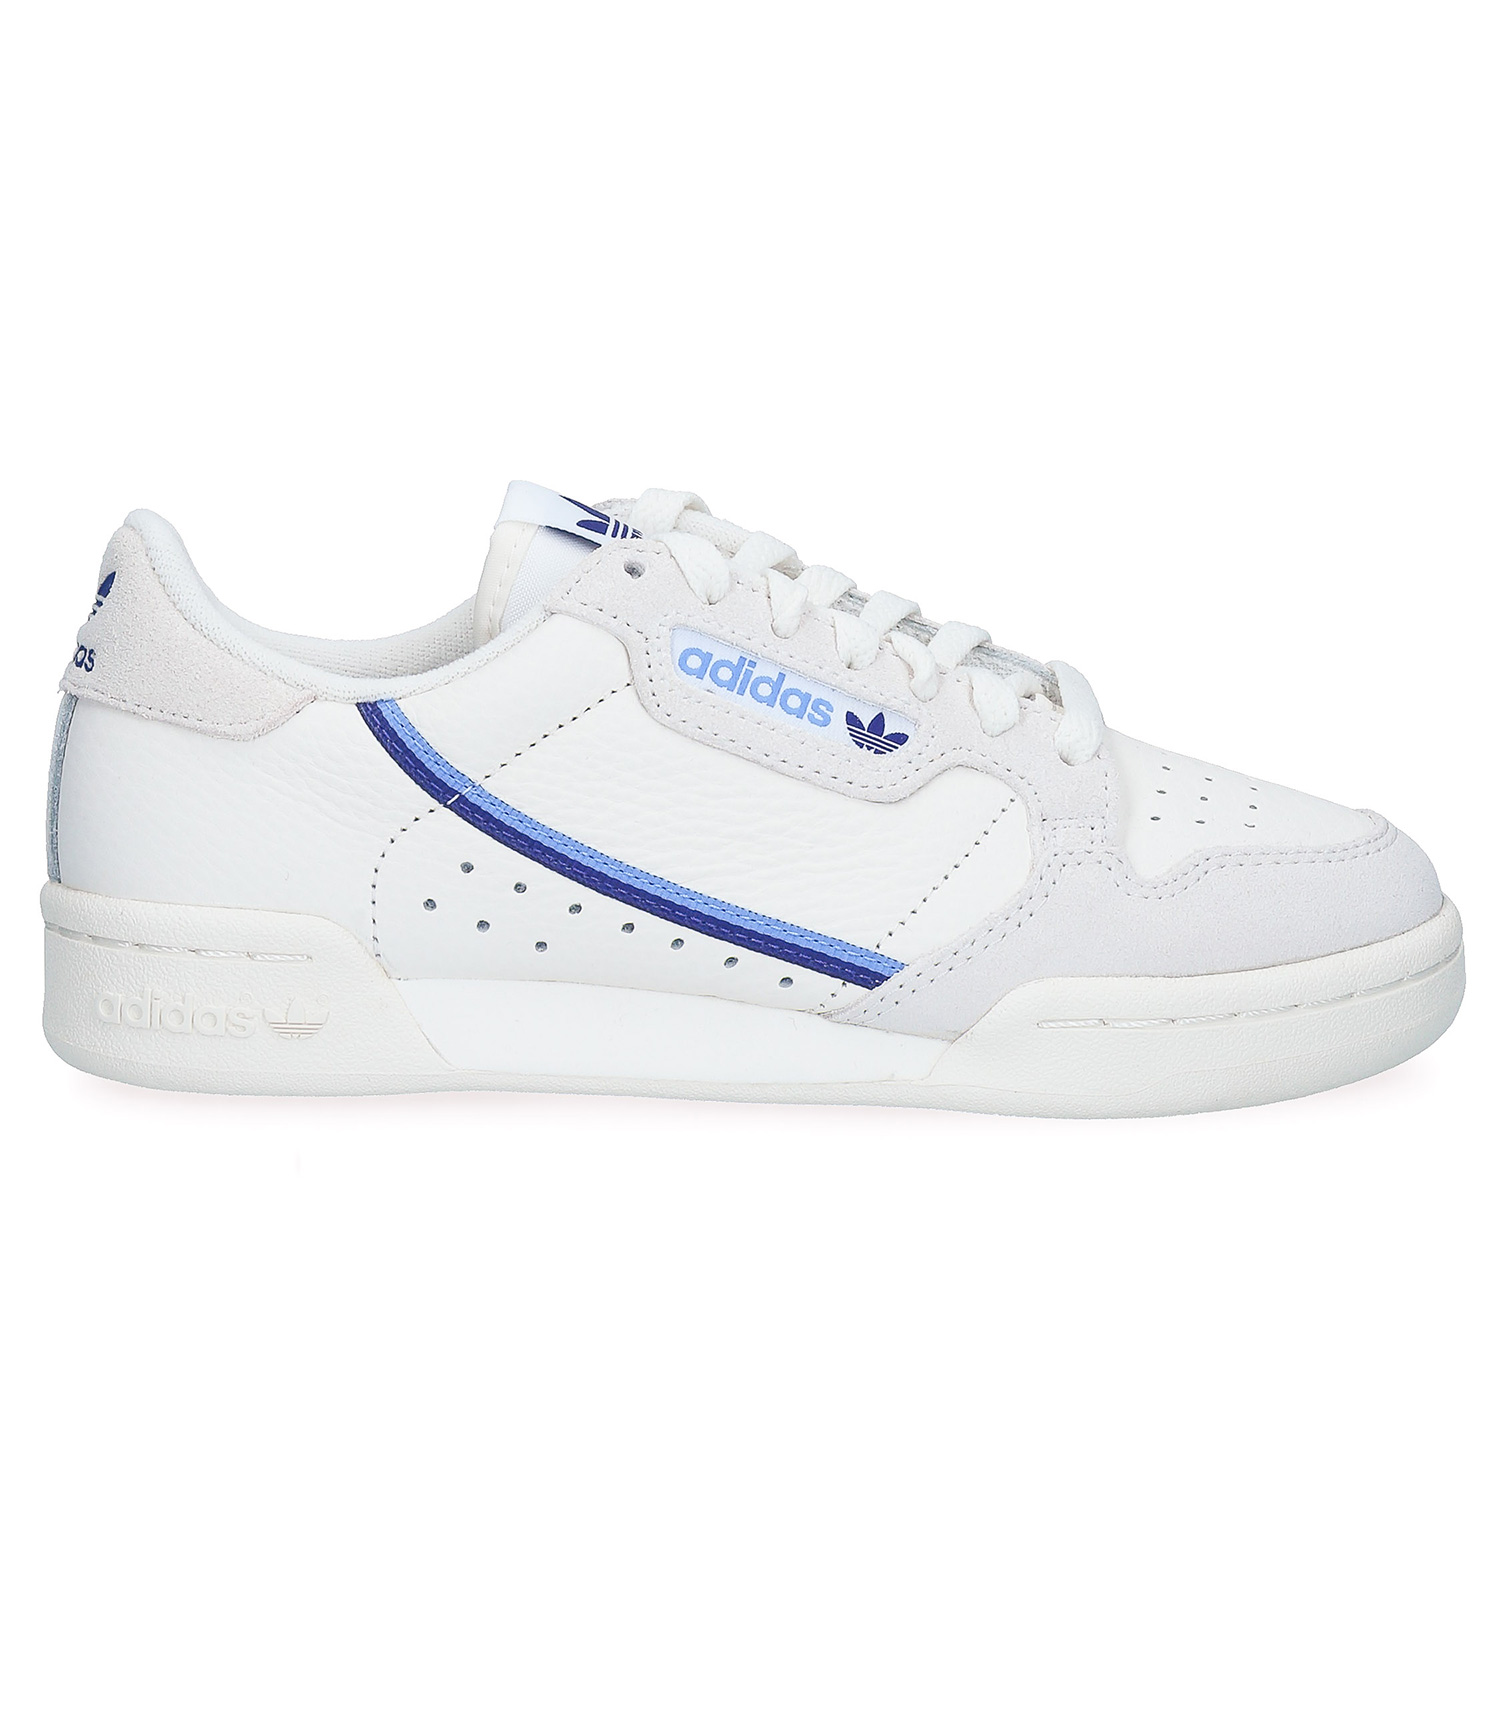 Sneakers Continental 80 Blanc/Bleu adidas Originals - Jane de Boy